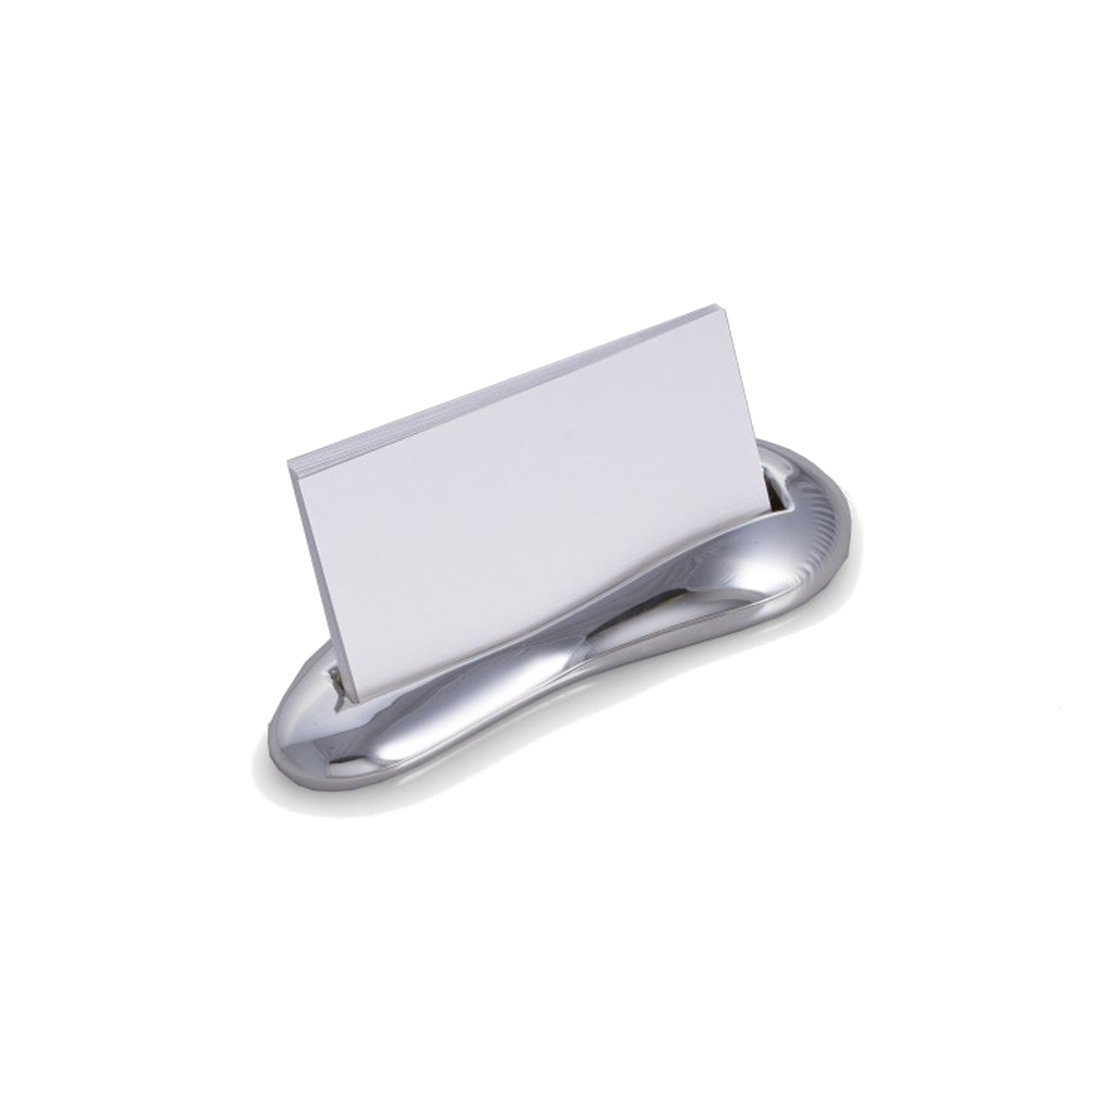 Amazon.com: Silver-Plated Business Card Holder: Everything Else